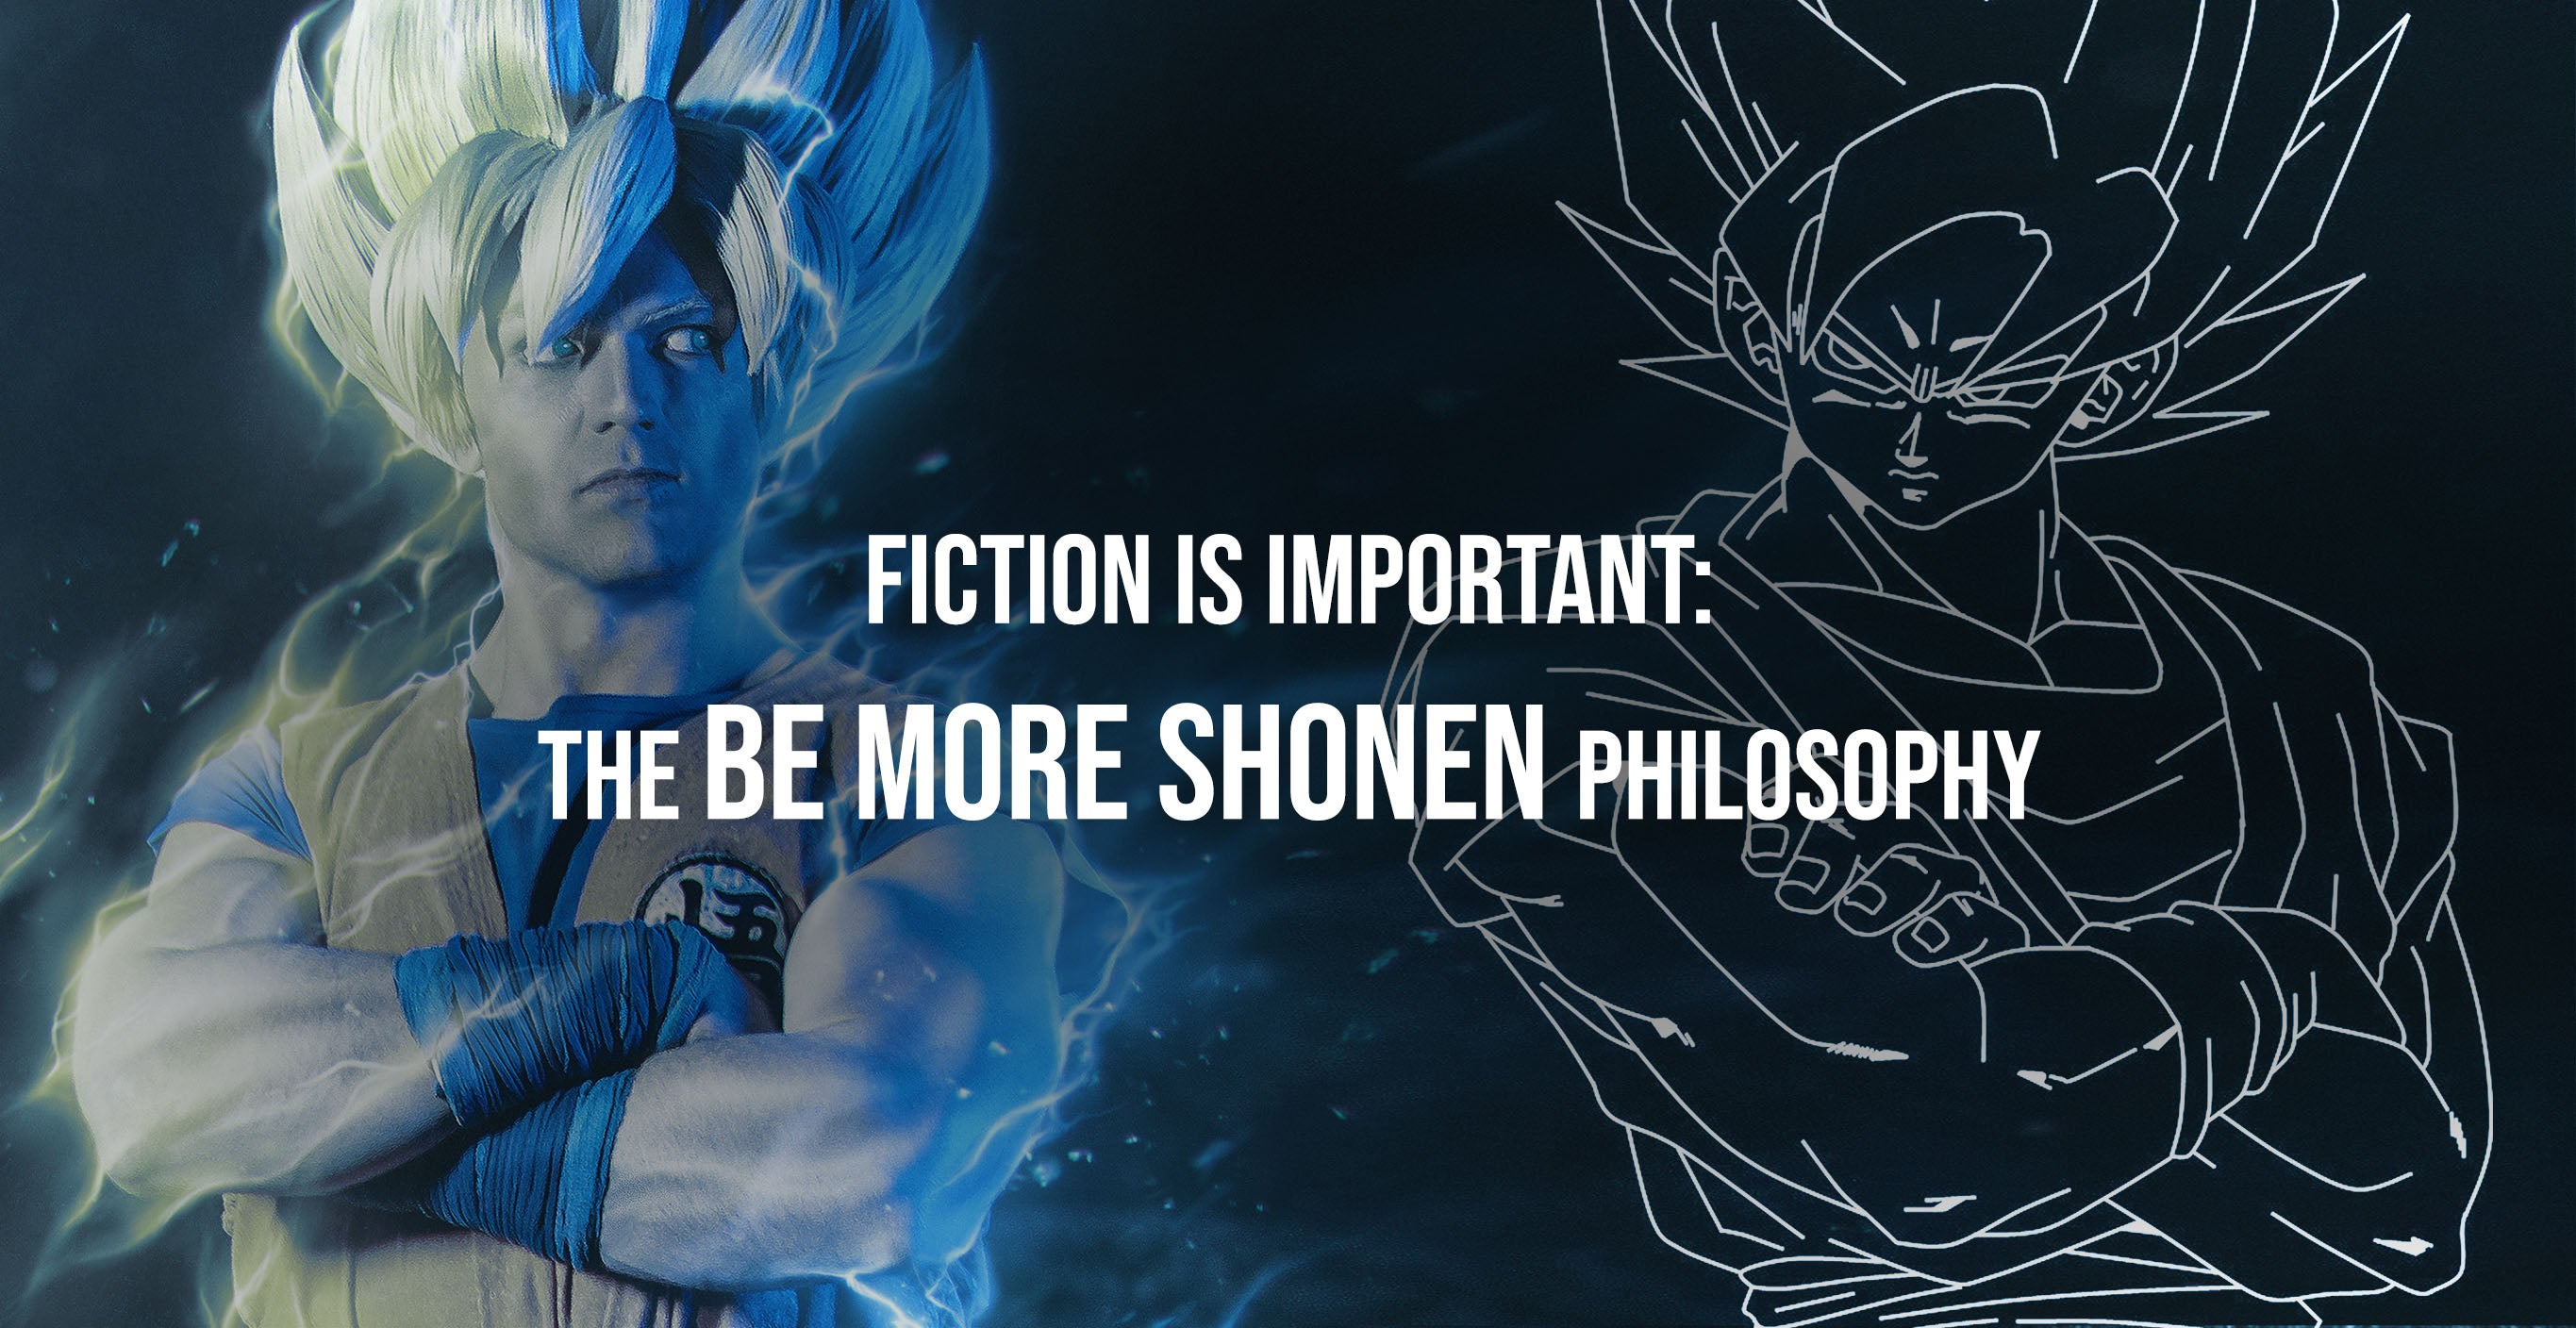 The Be More Shonen Philosophy - The importance of fiction in goal setting (for anime weebs)